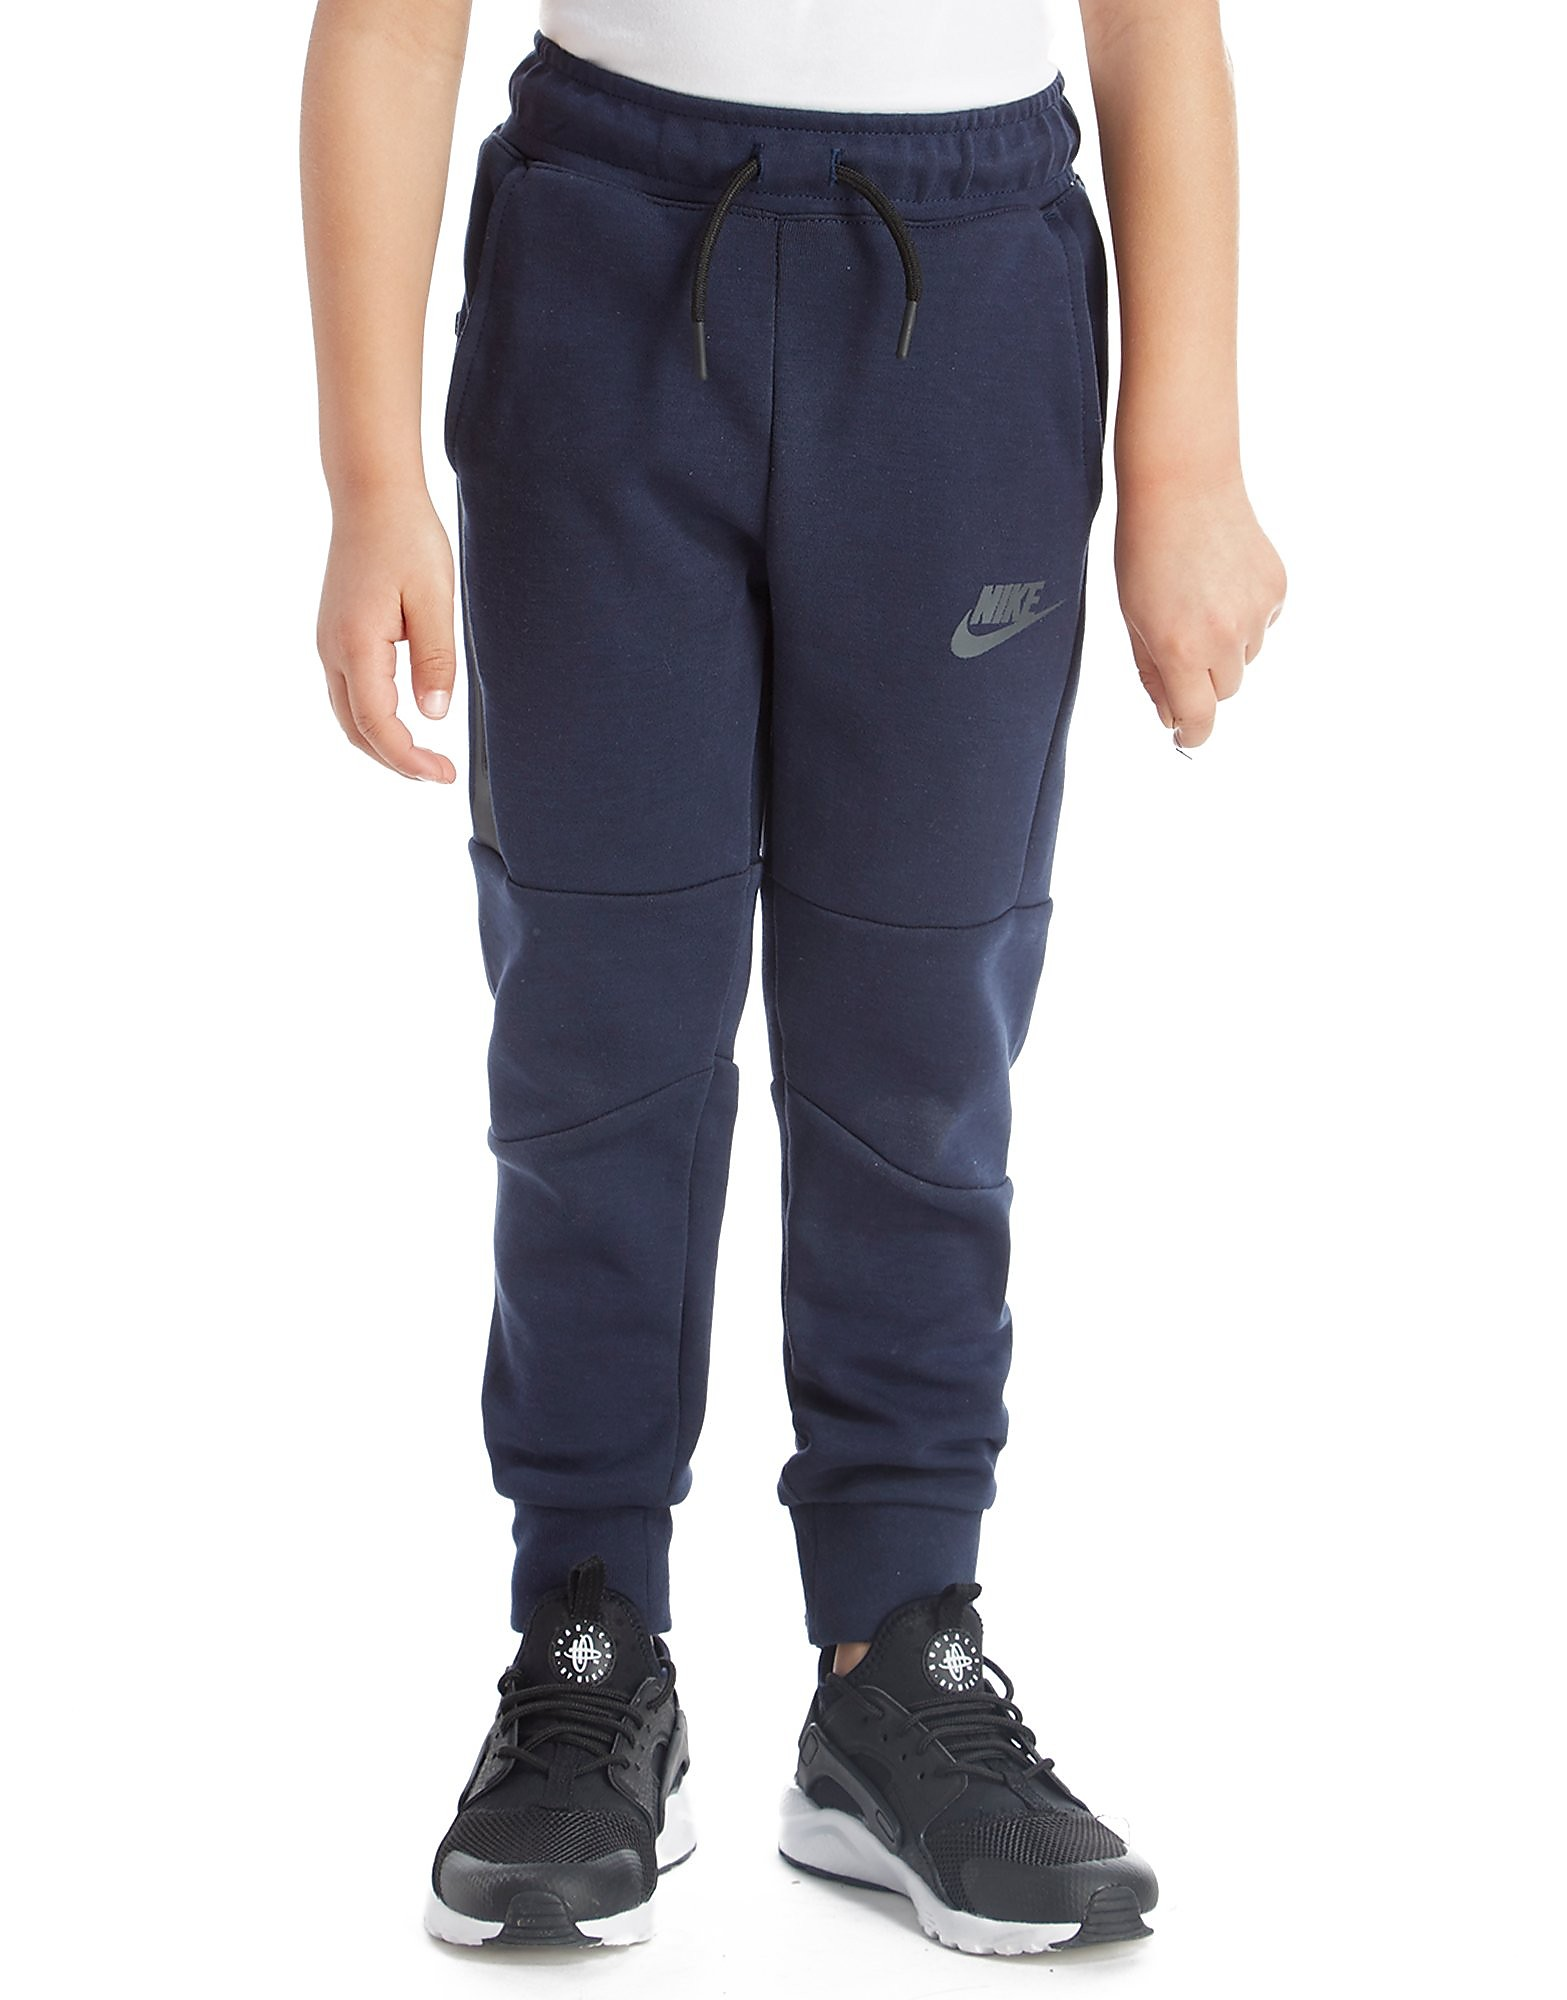 Nike pantalón Tech Fleece infantil